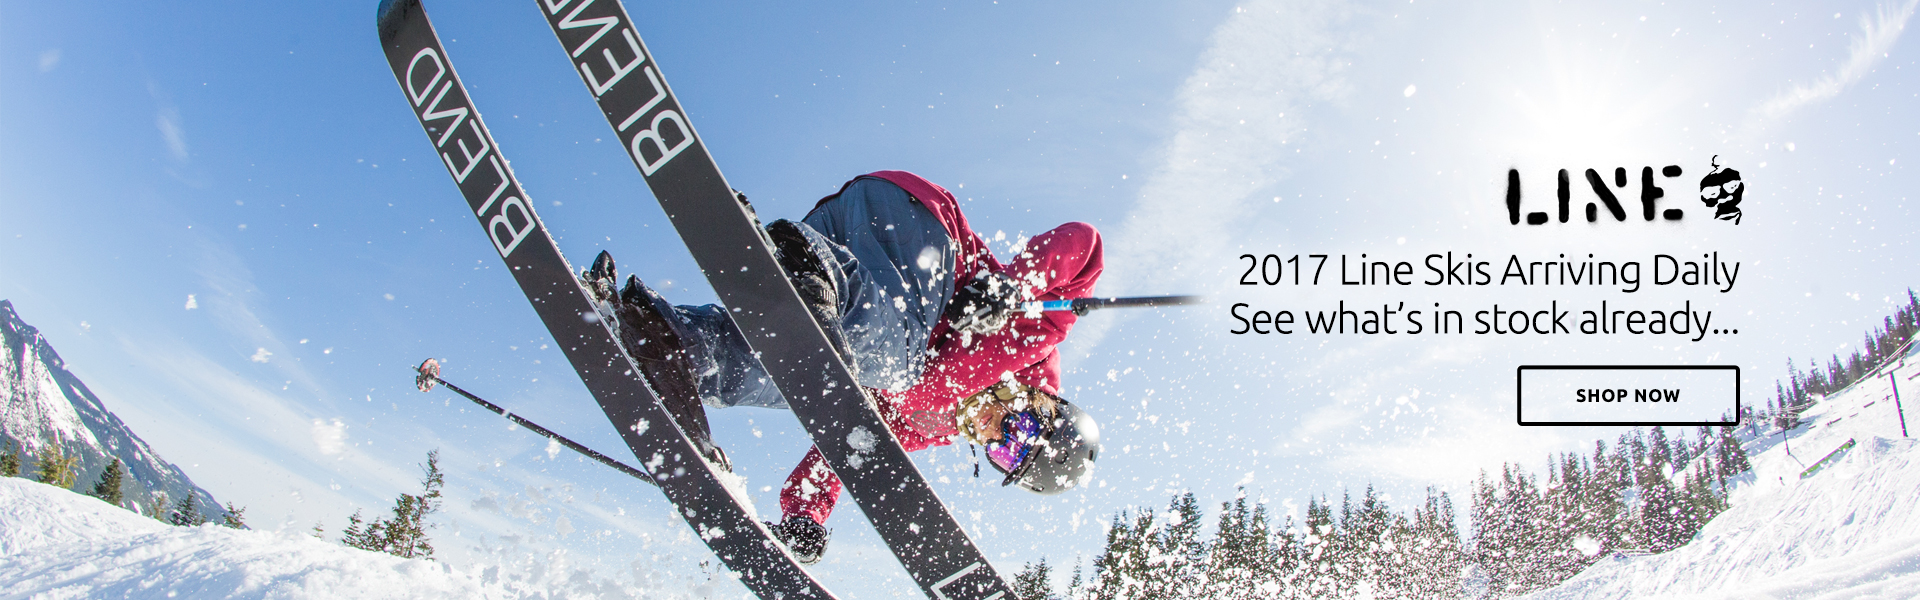 Shop Our Ski Department